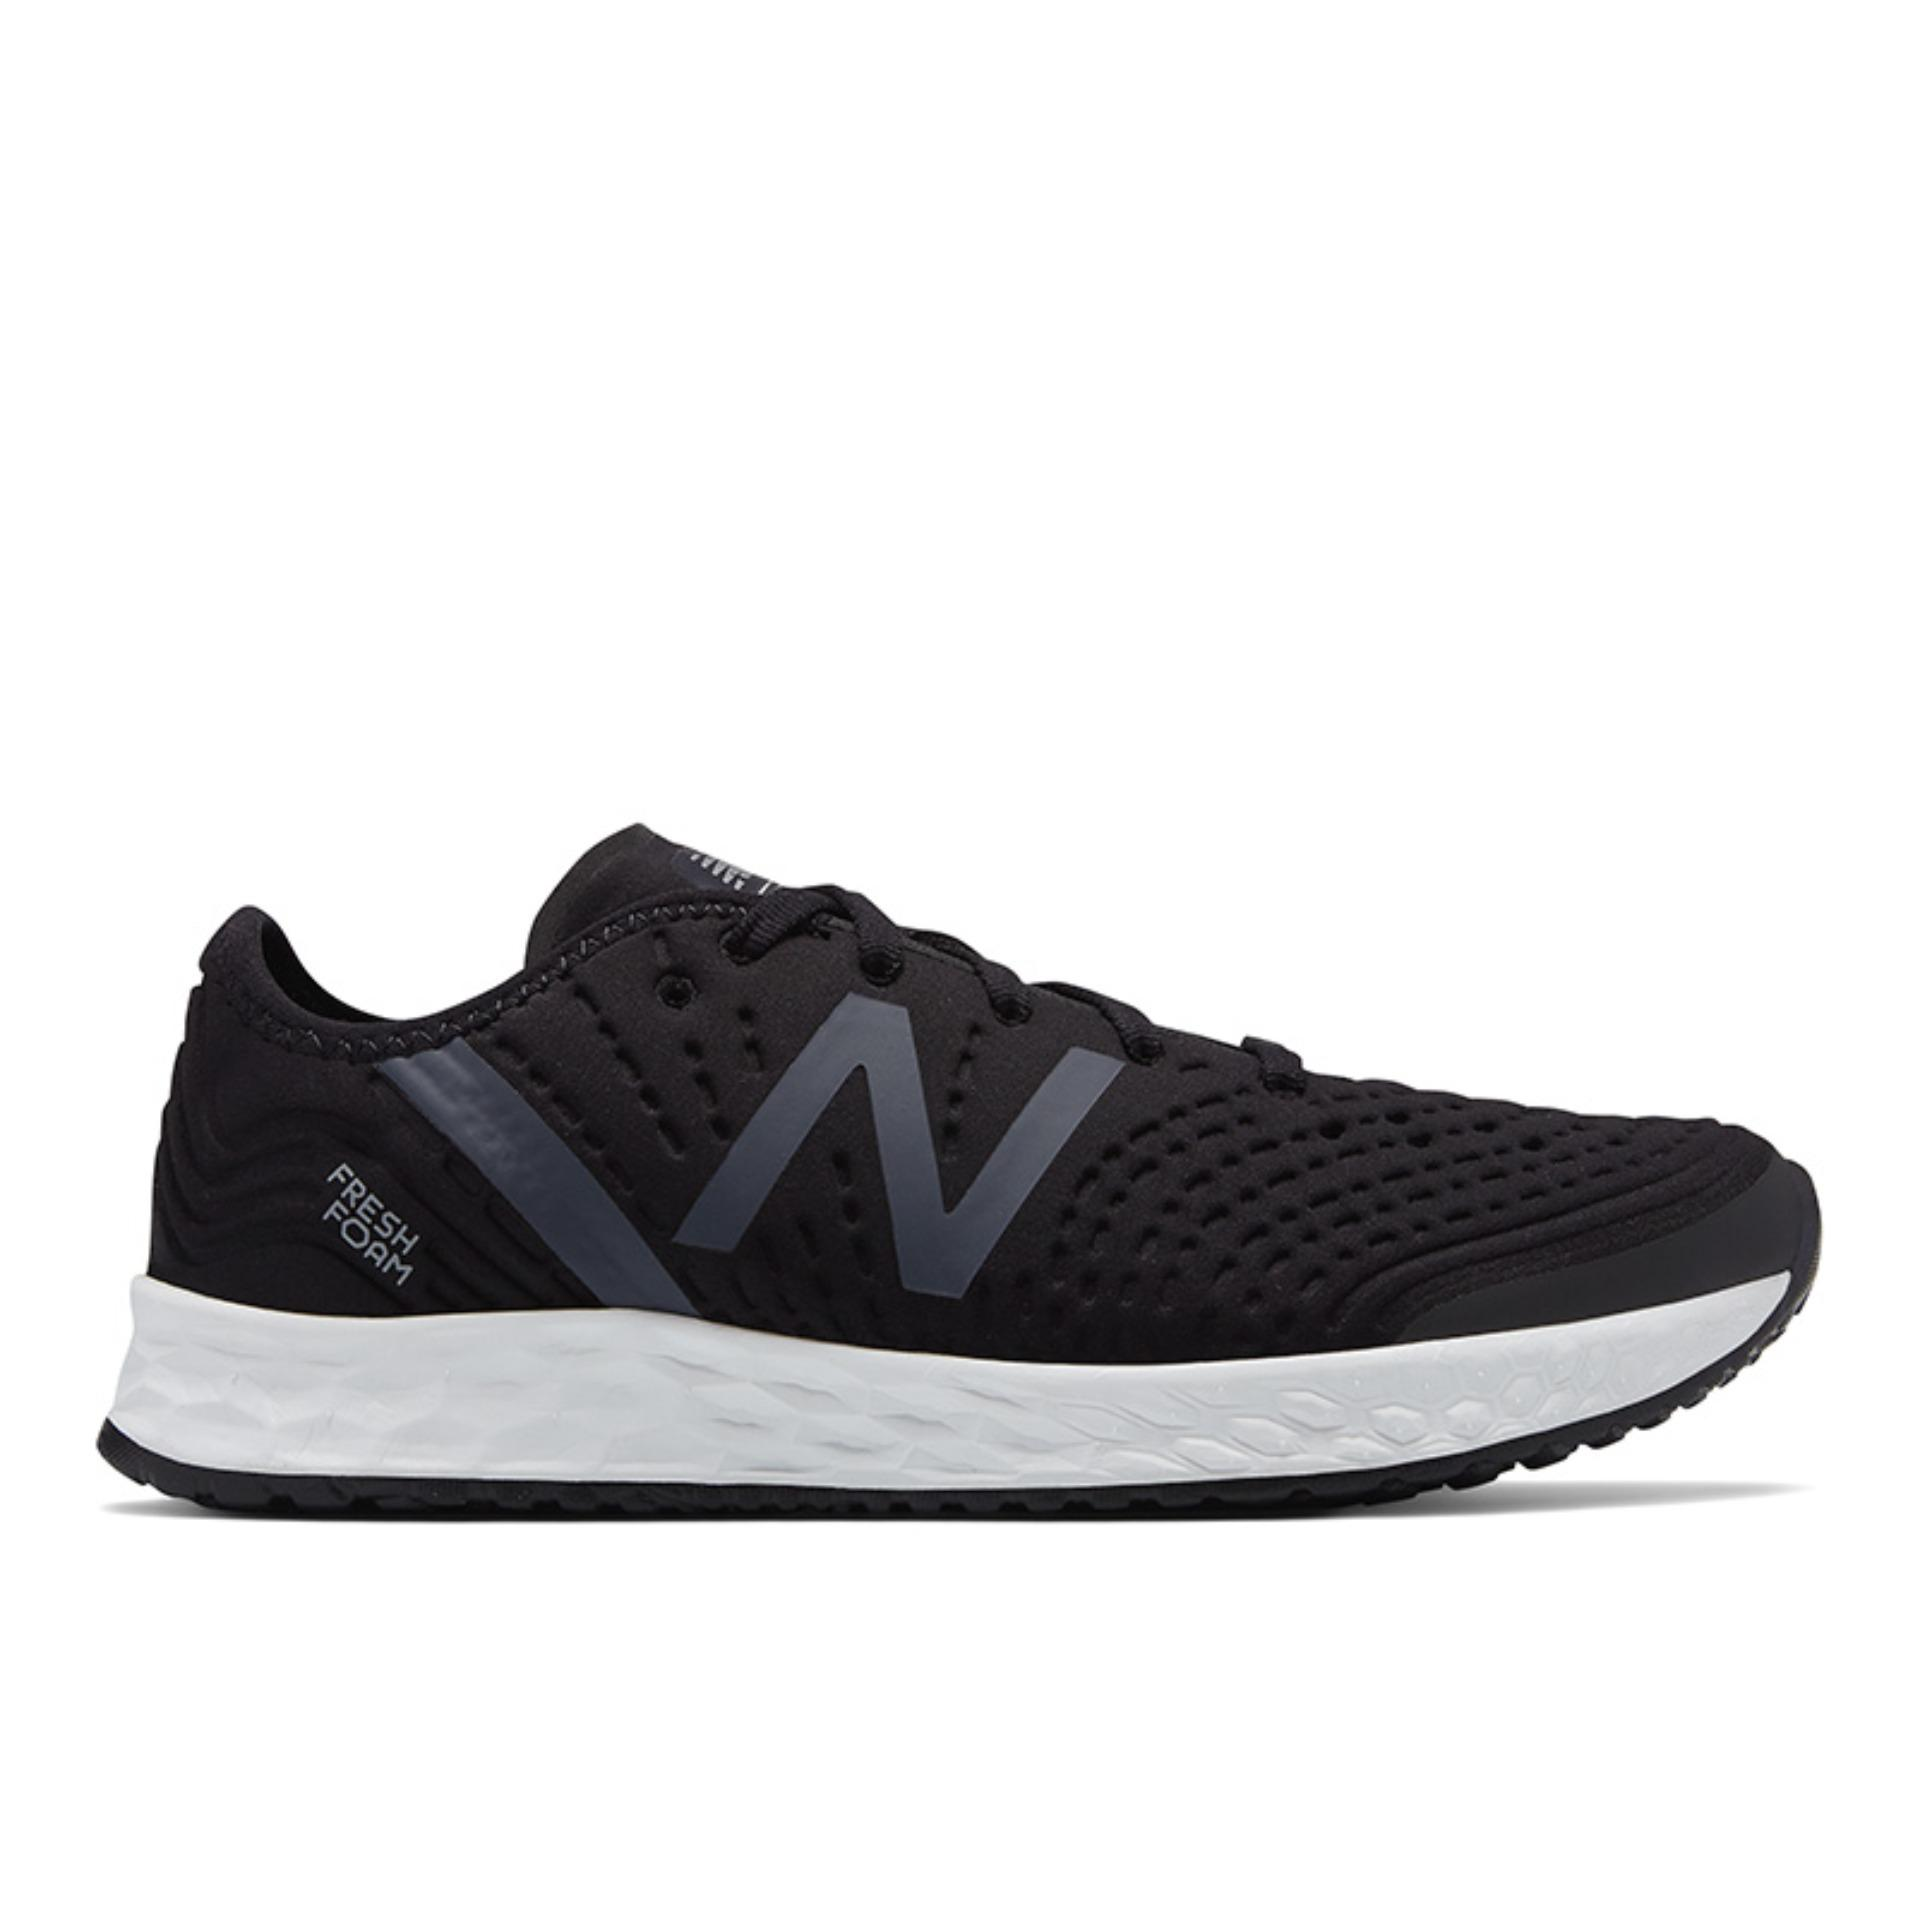 SPORTSWEAR FIX : New Balance 1980 Fresh Foam Zante 'Black